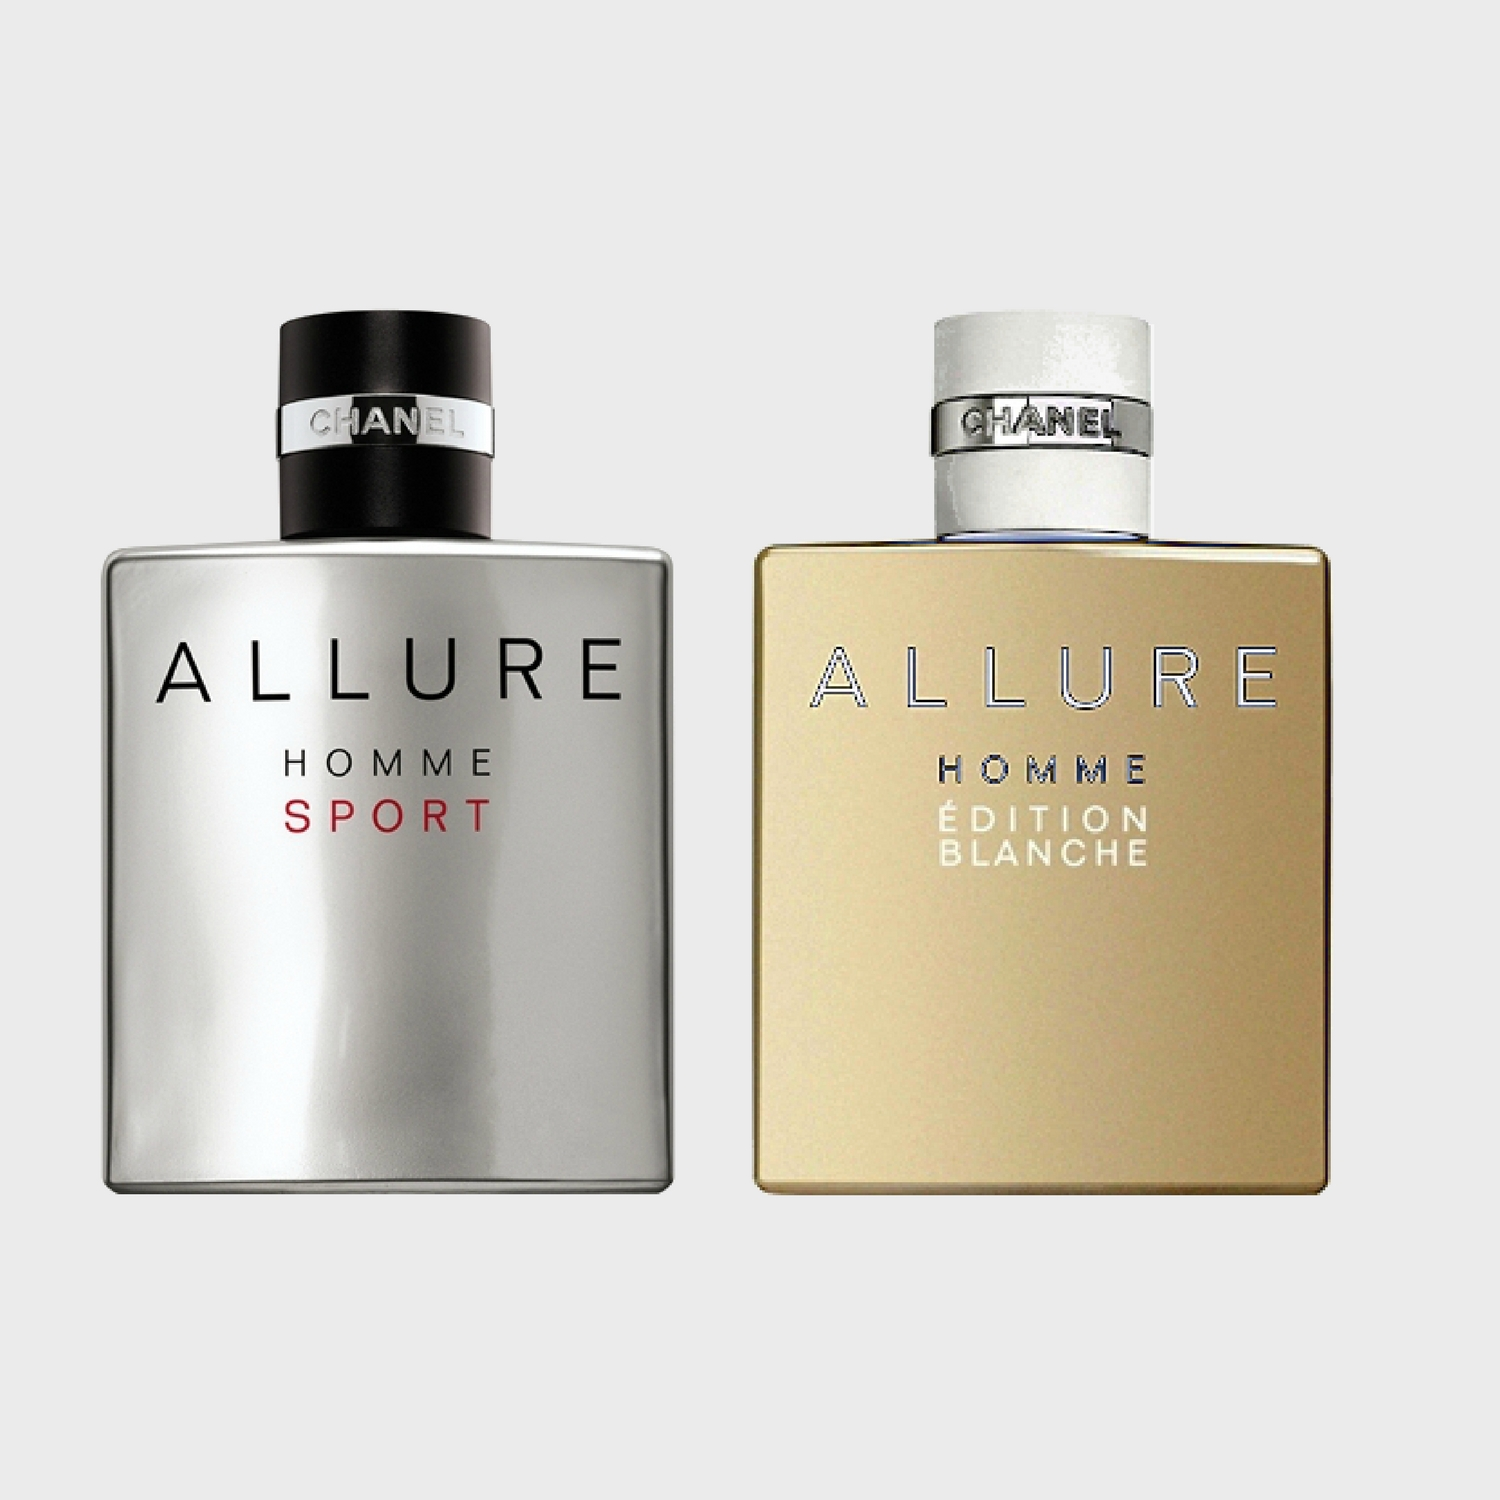 Allure Homme Sport Chanel Allure Homme Sport And Chanel Allure Homme Edition